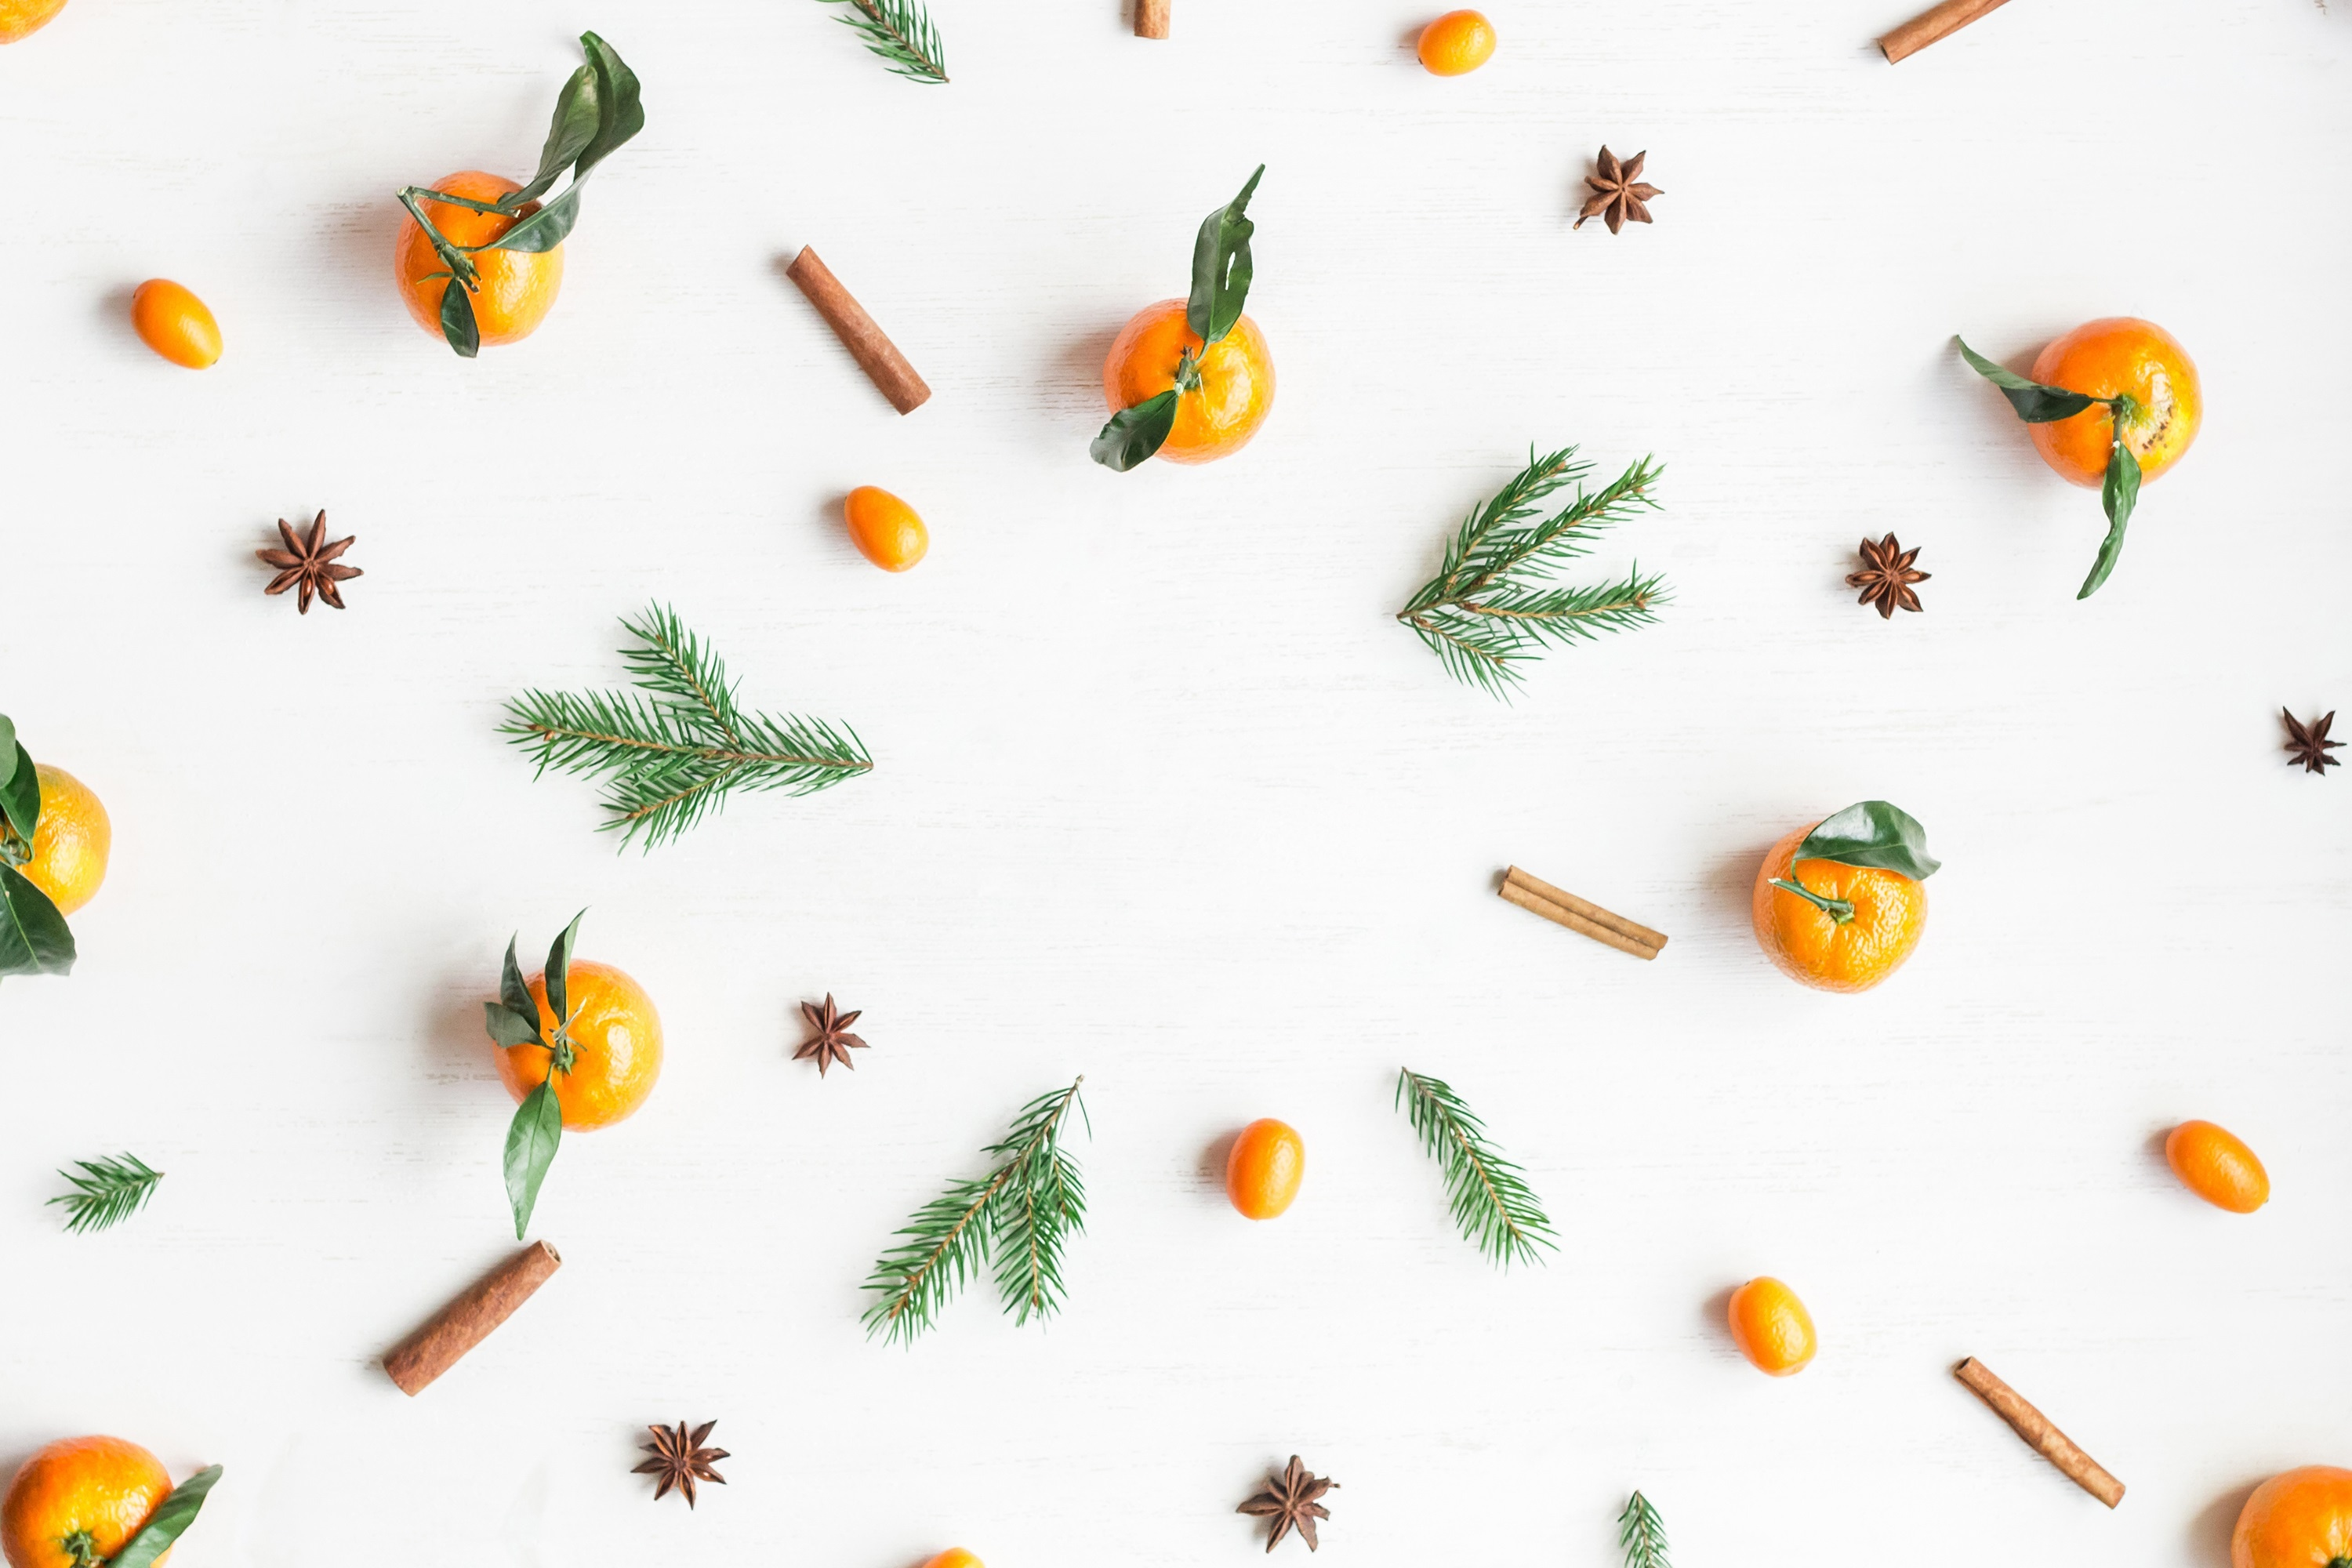 11 Ways to Stay Healthy During the Holidays